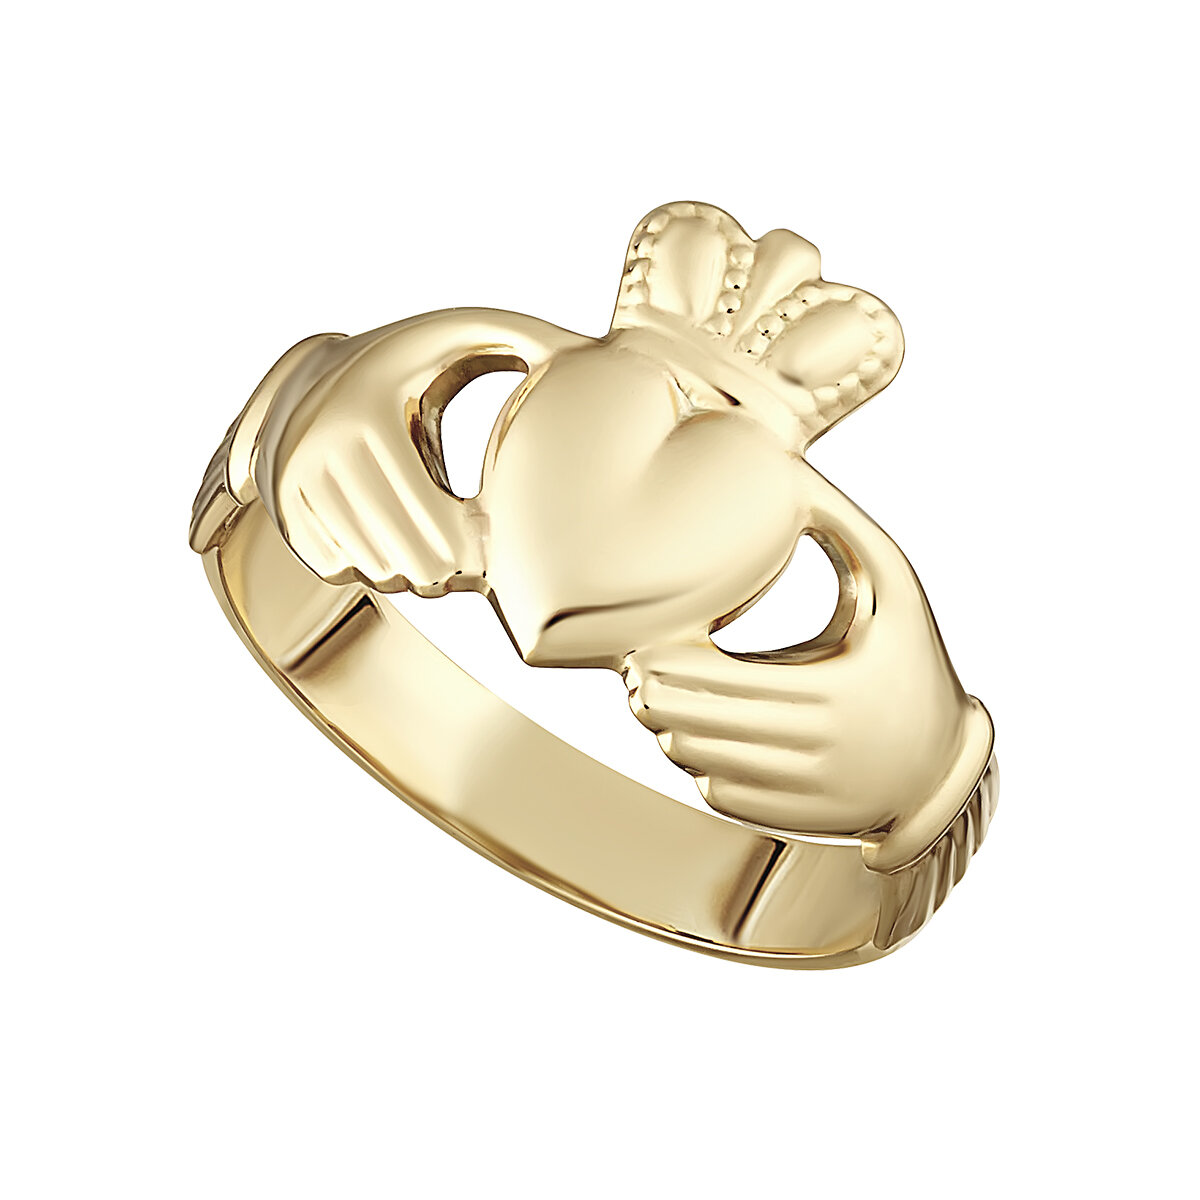 14K gold claddagh ring for him s2981 from Solvar